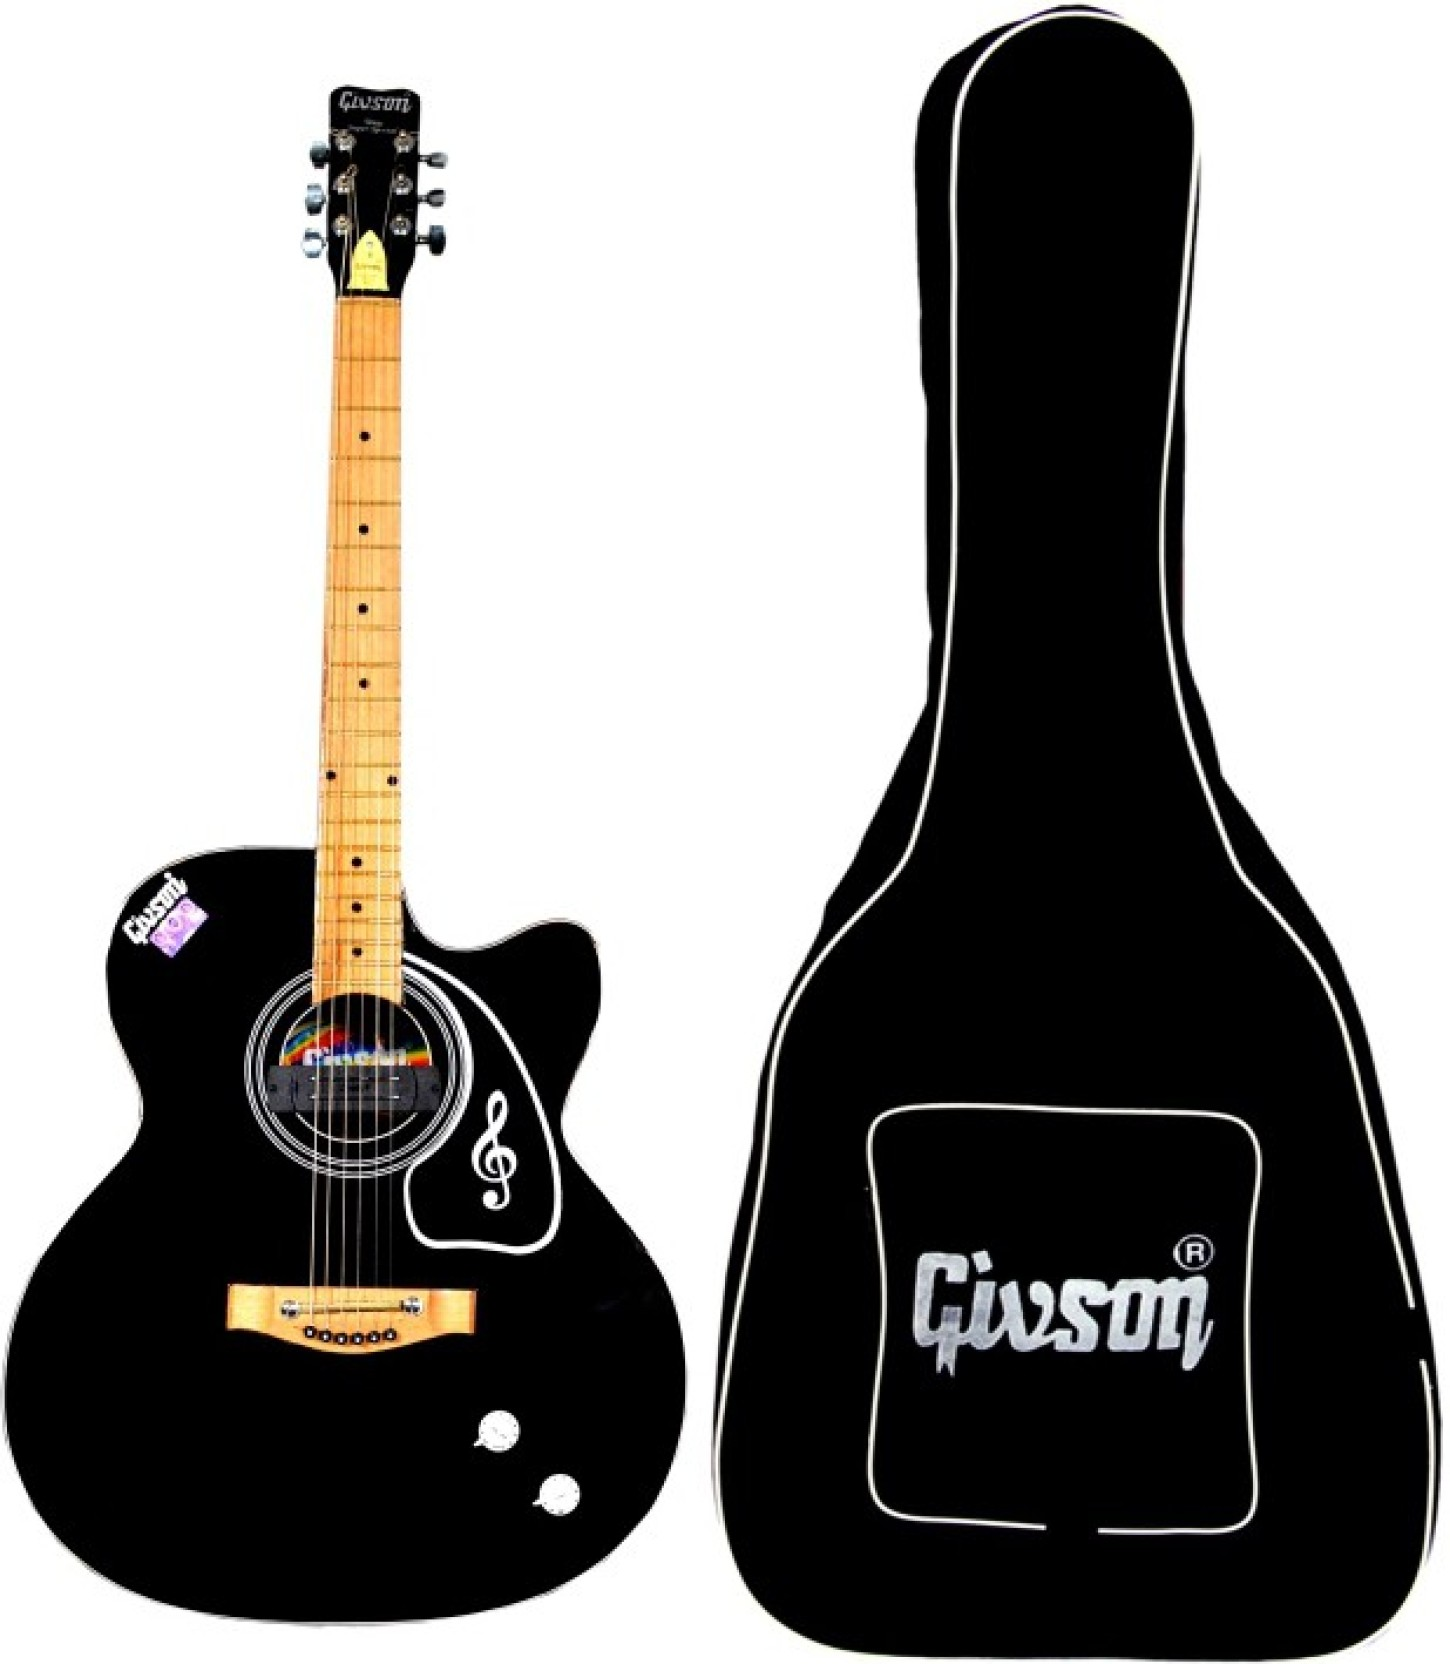 givson venus rosewood acoustic guitar price in india givson